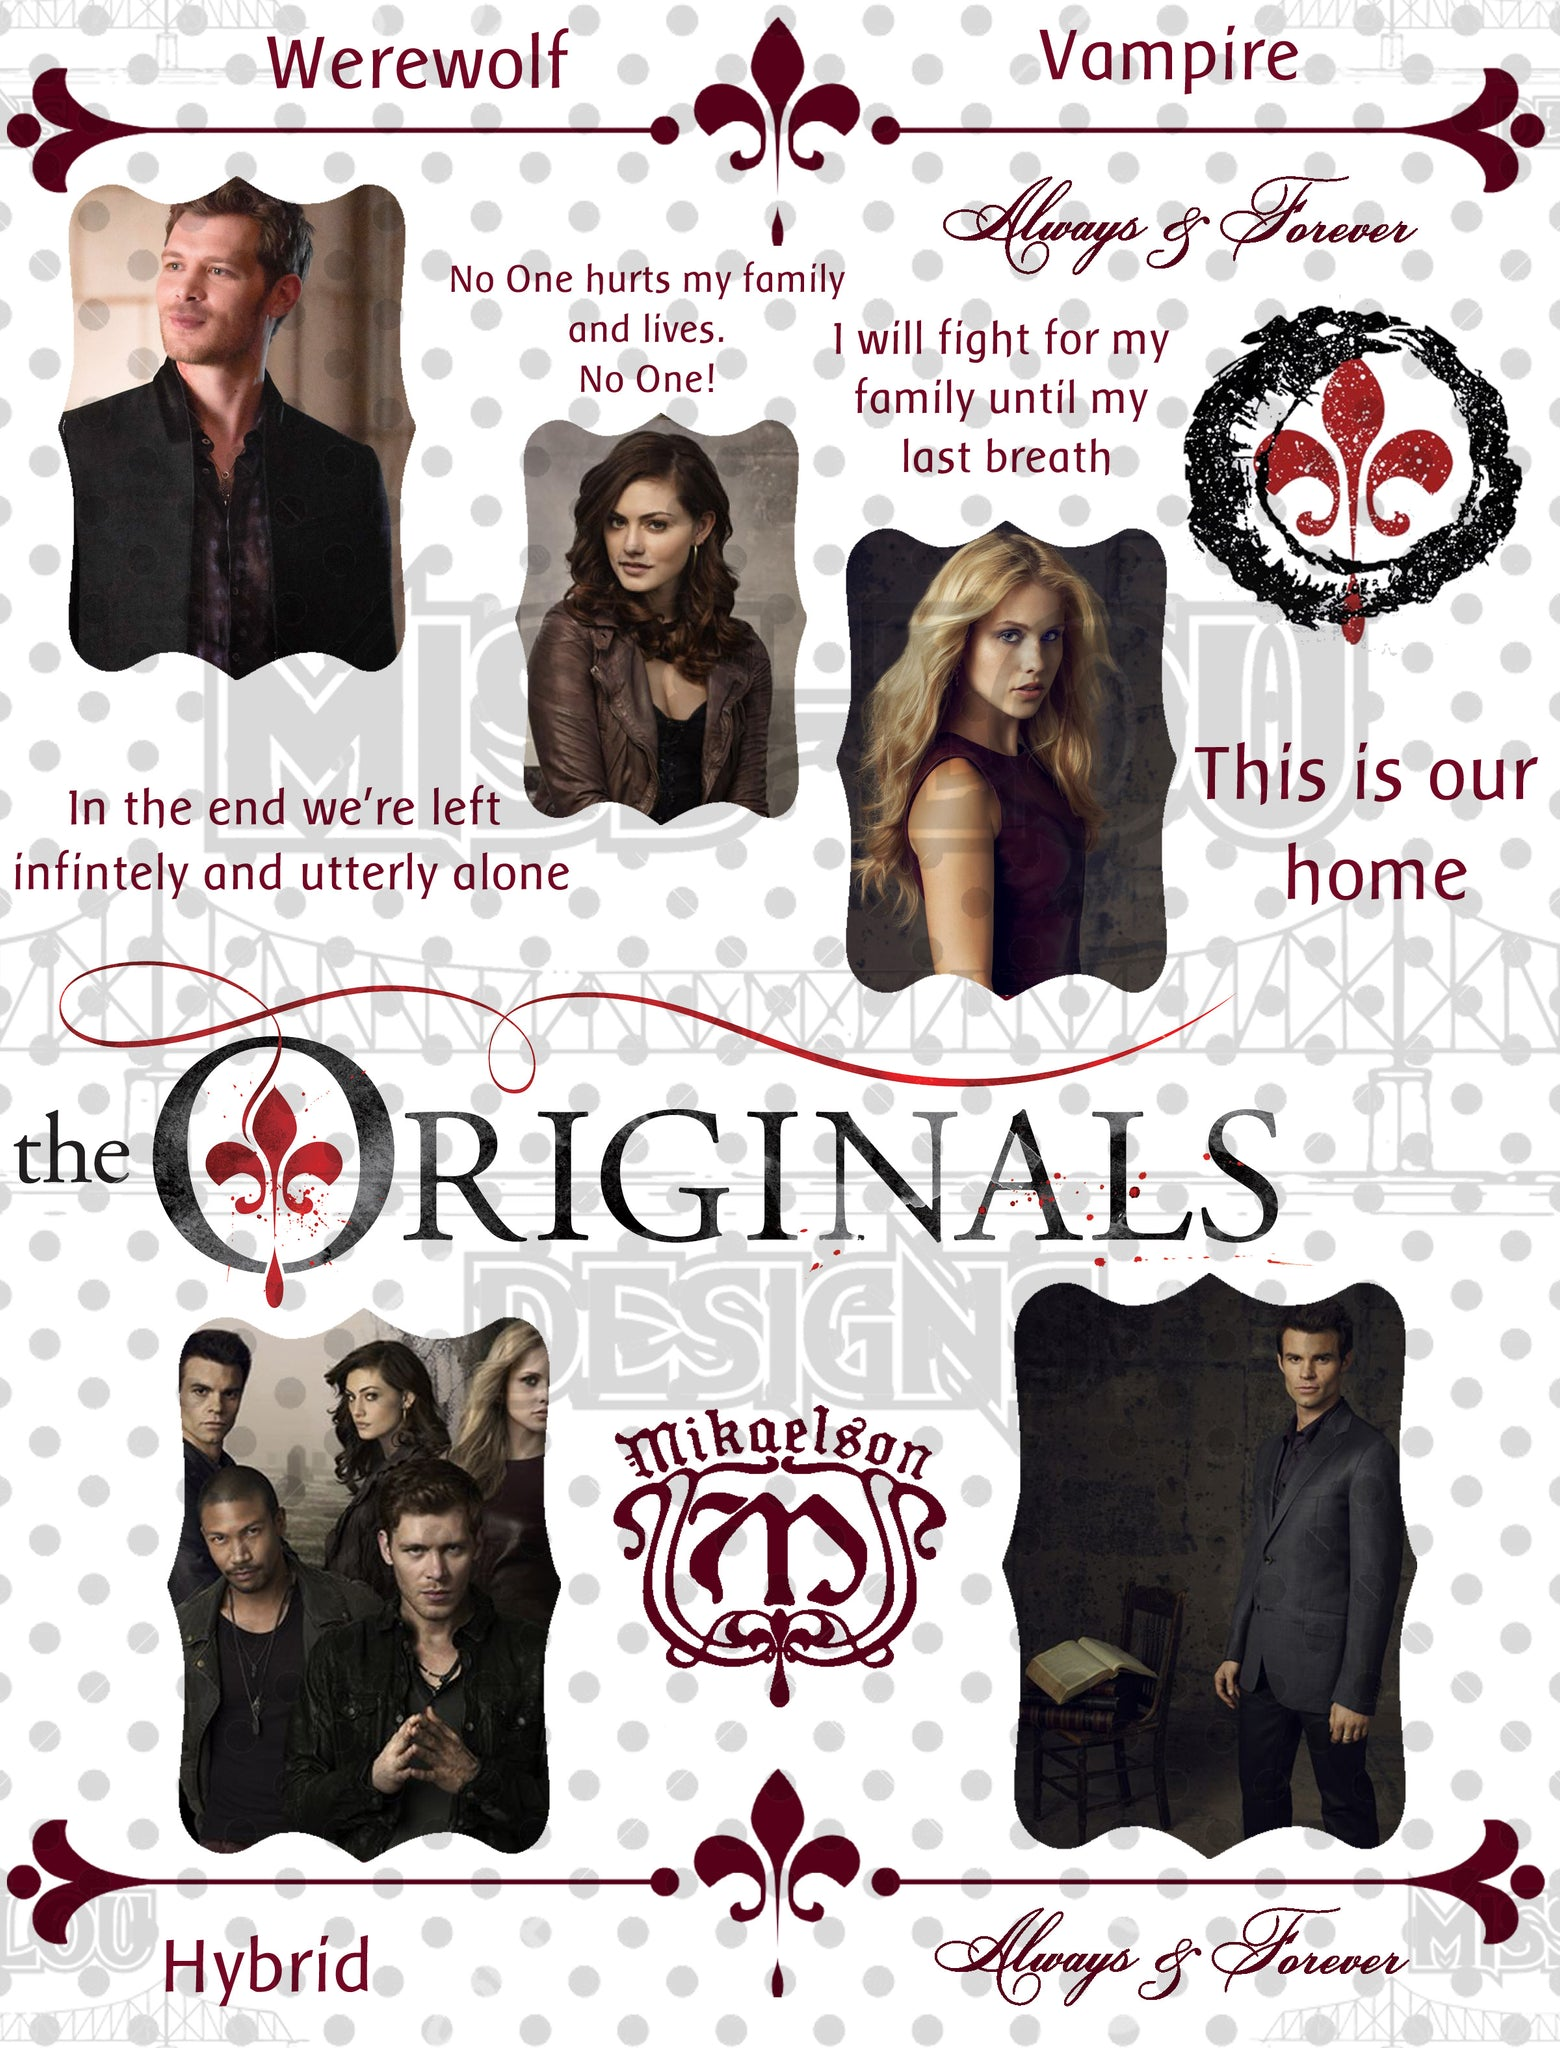 The Originals Fan Sheet Waterslide